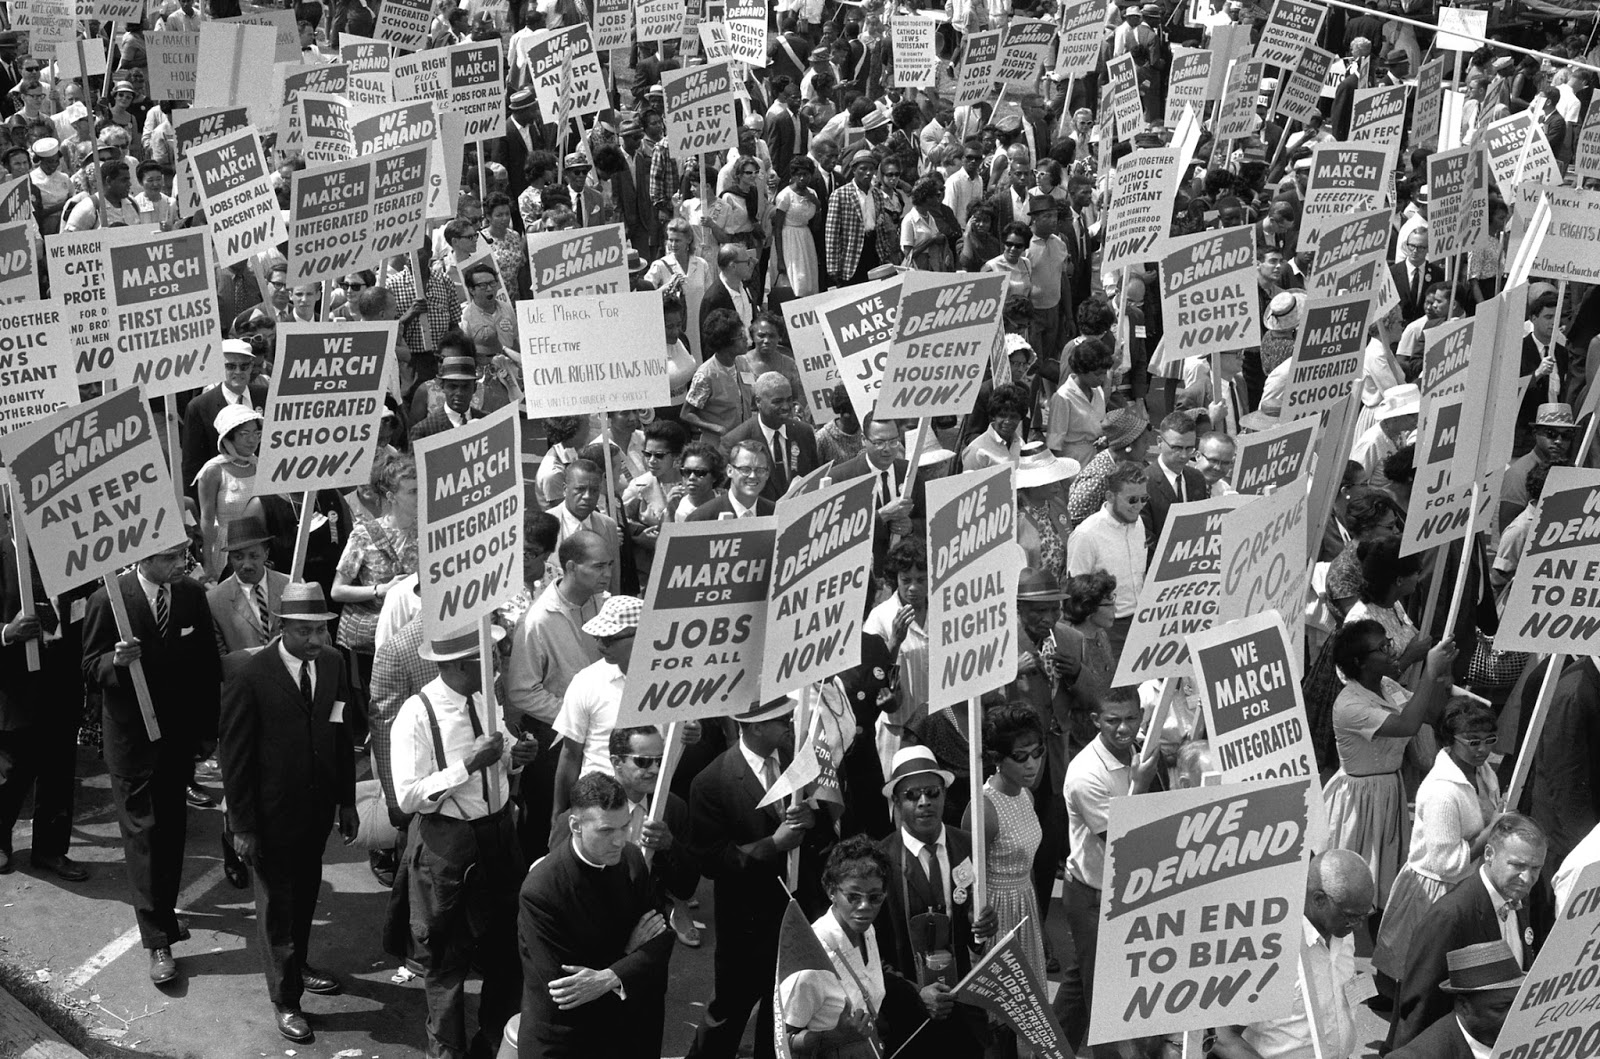 The march on washington 1963 public domain clip art photos and images